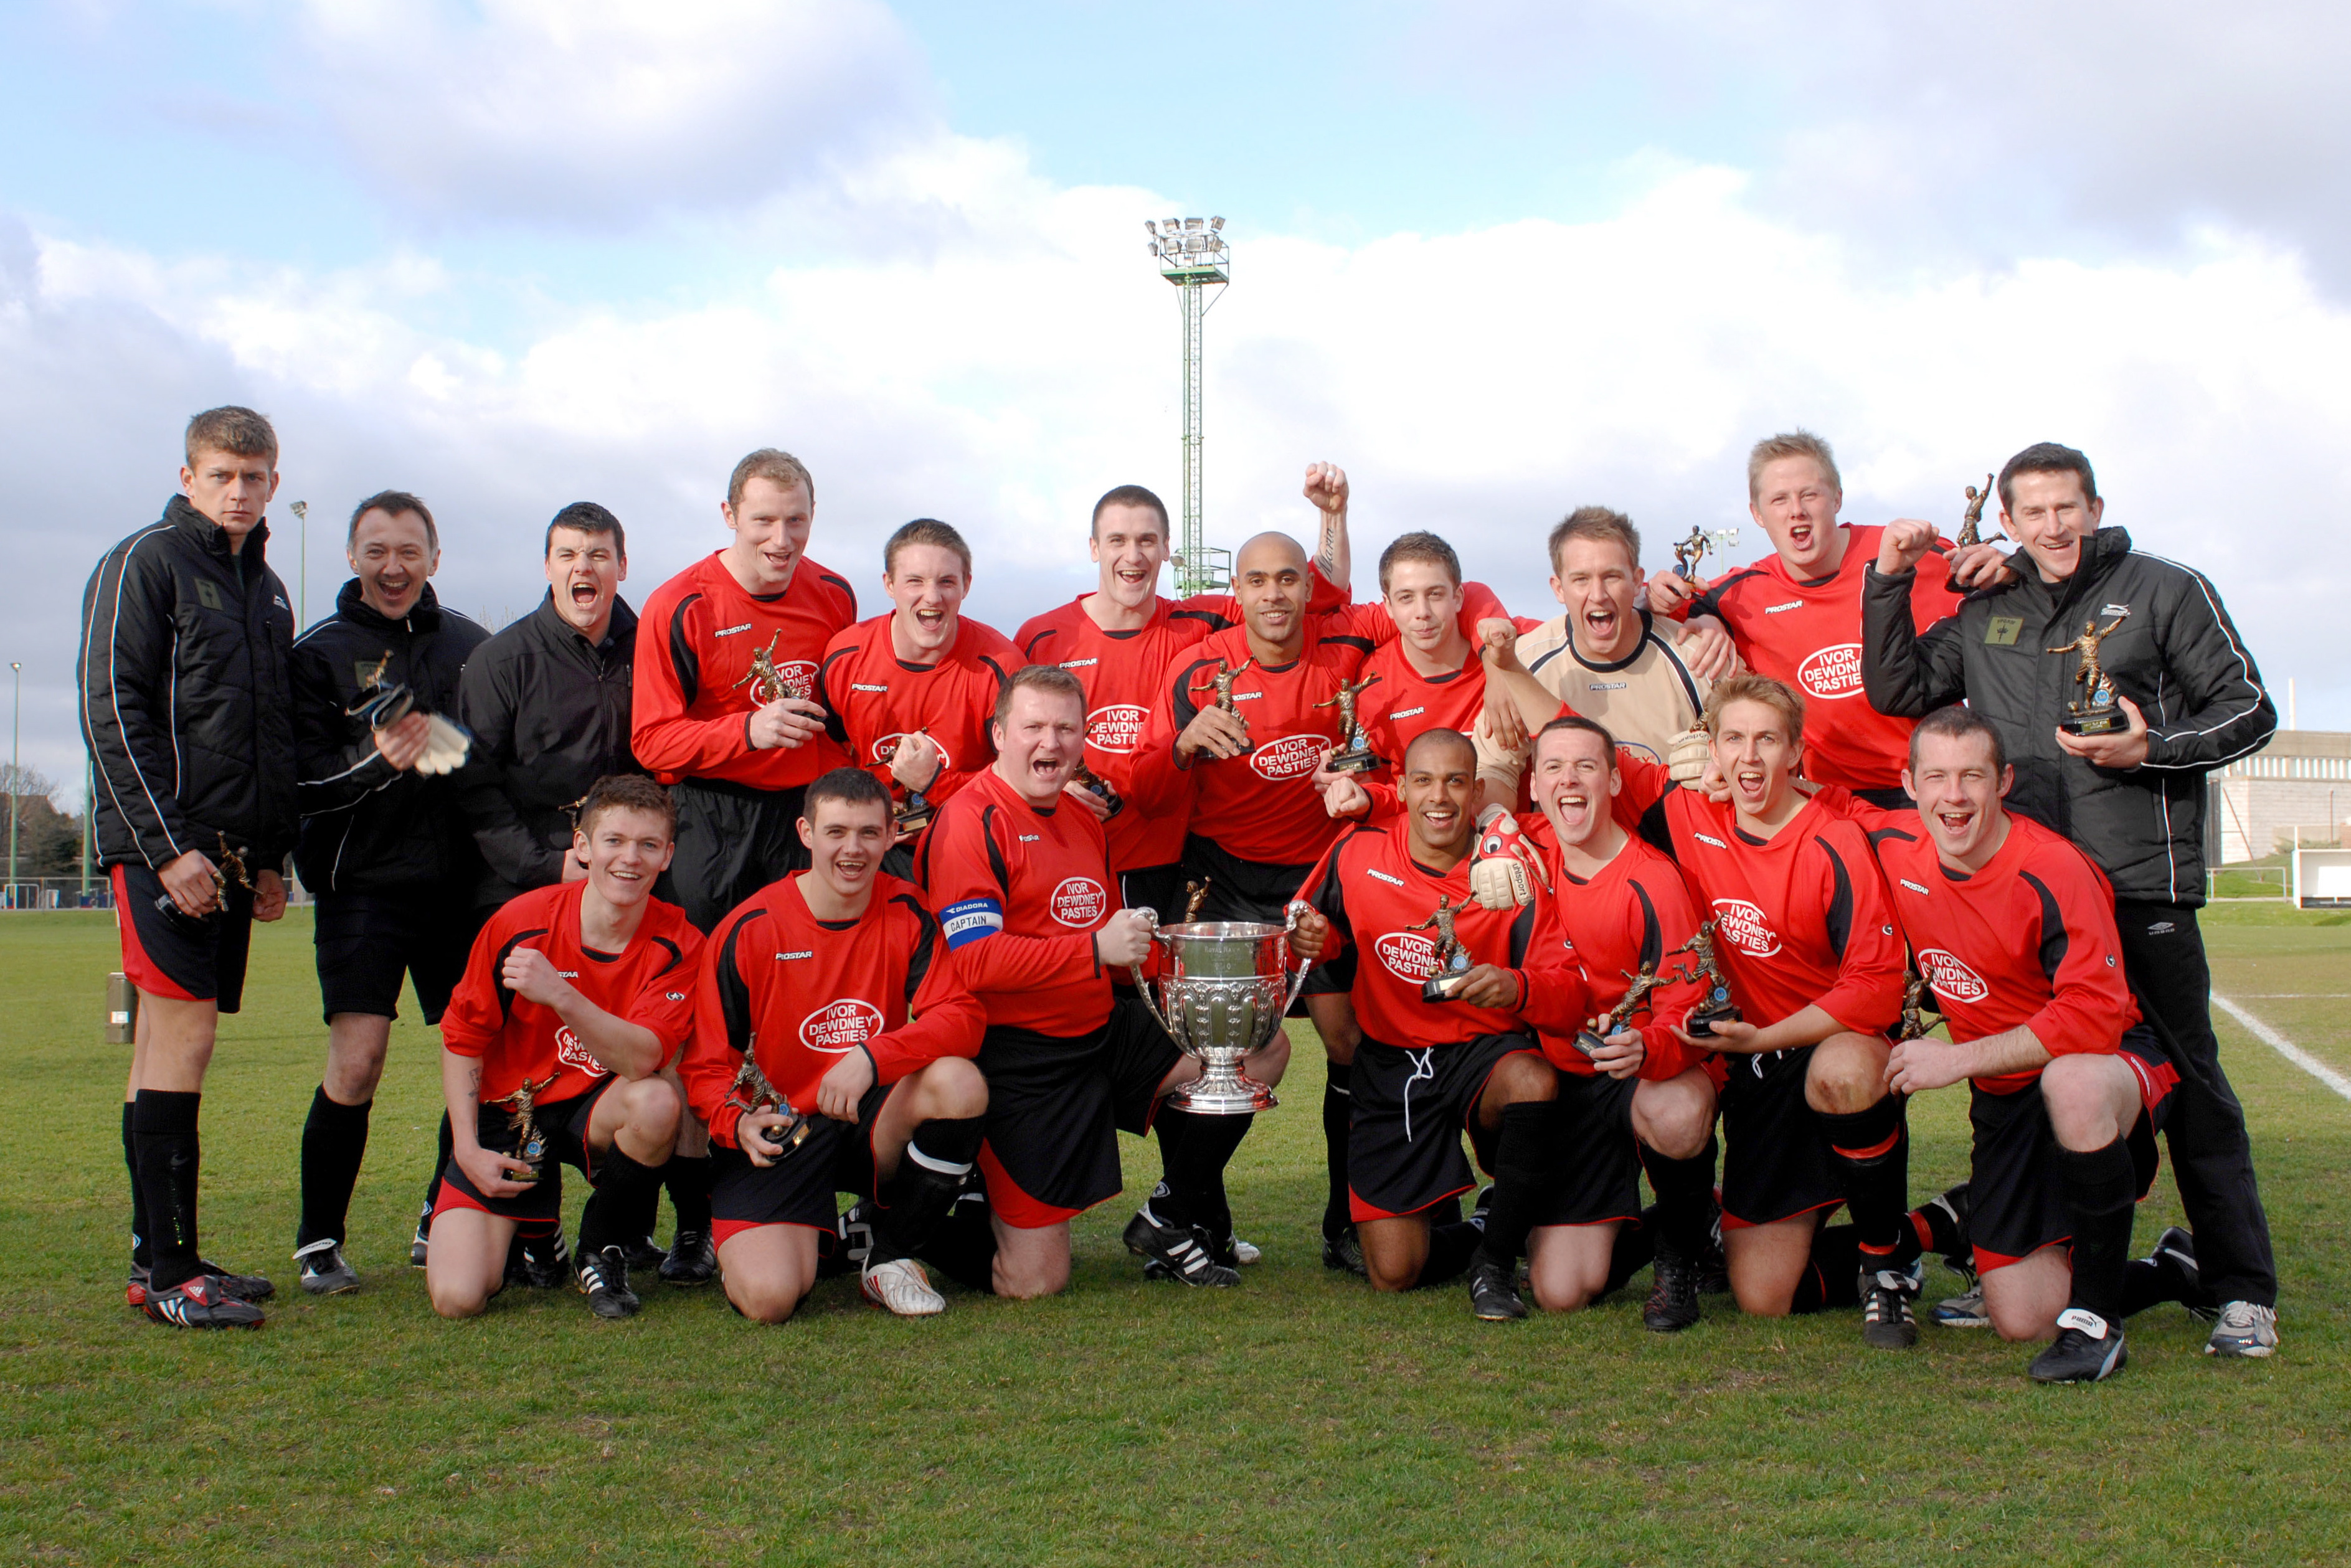 2009 Navy Cup winners FPGRM